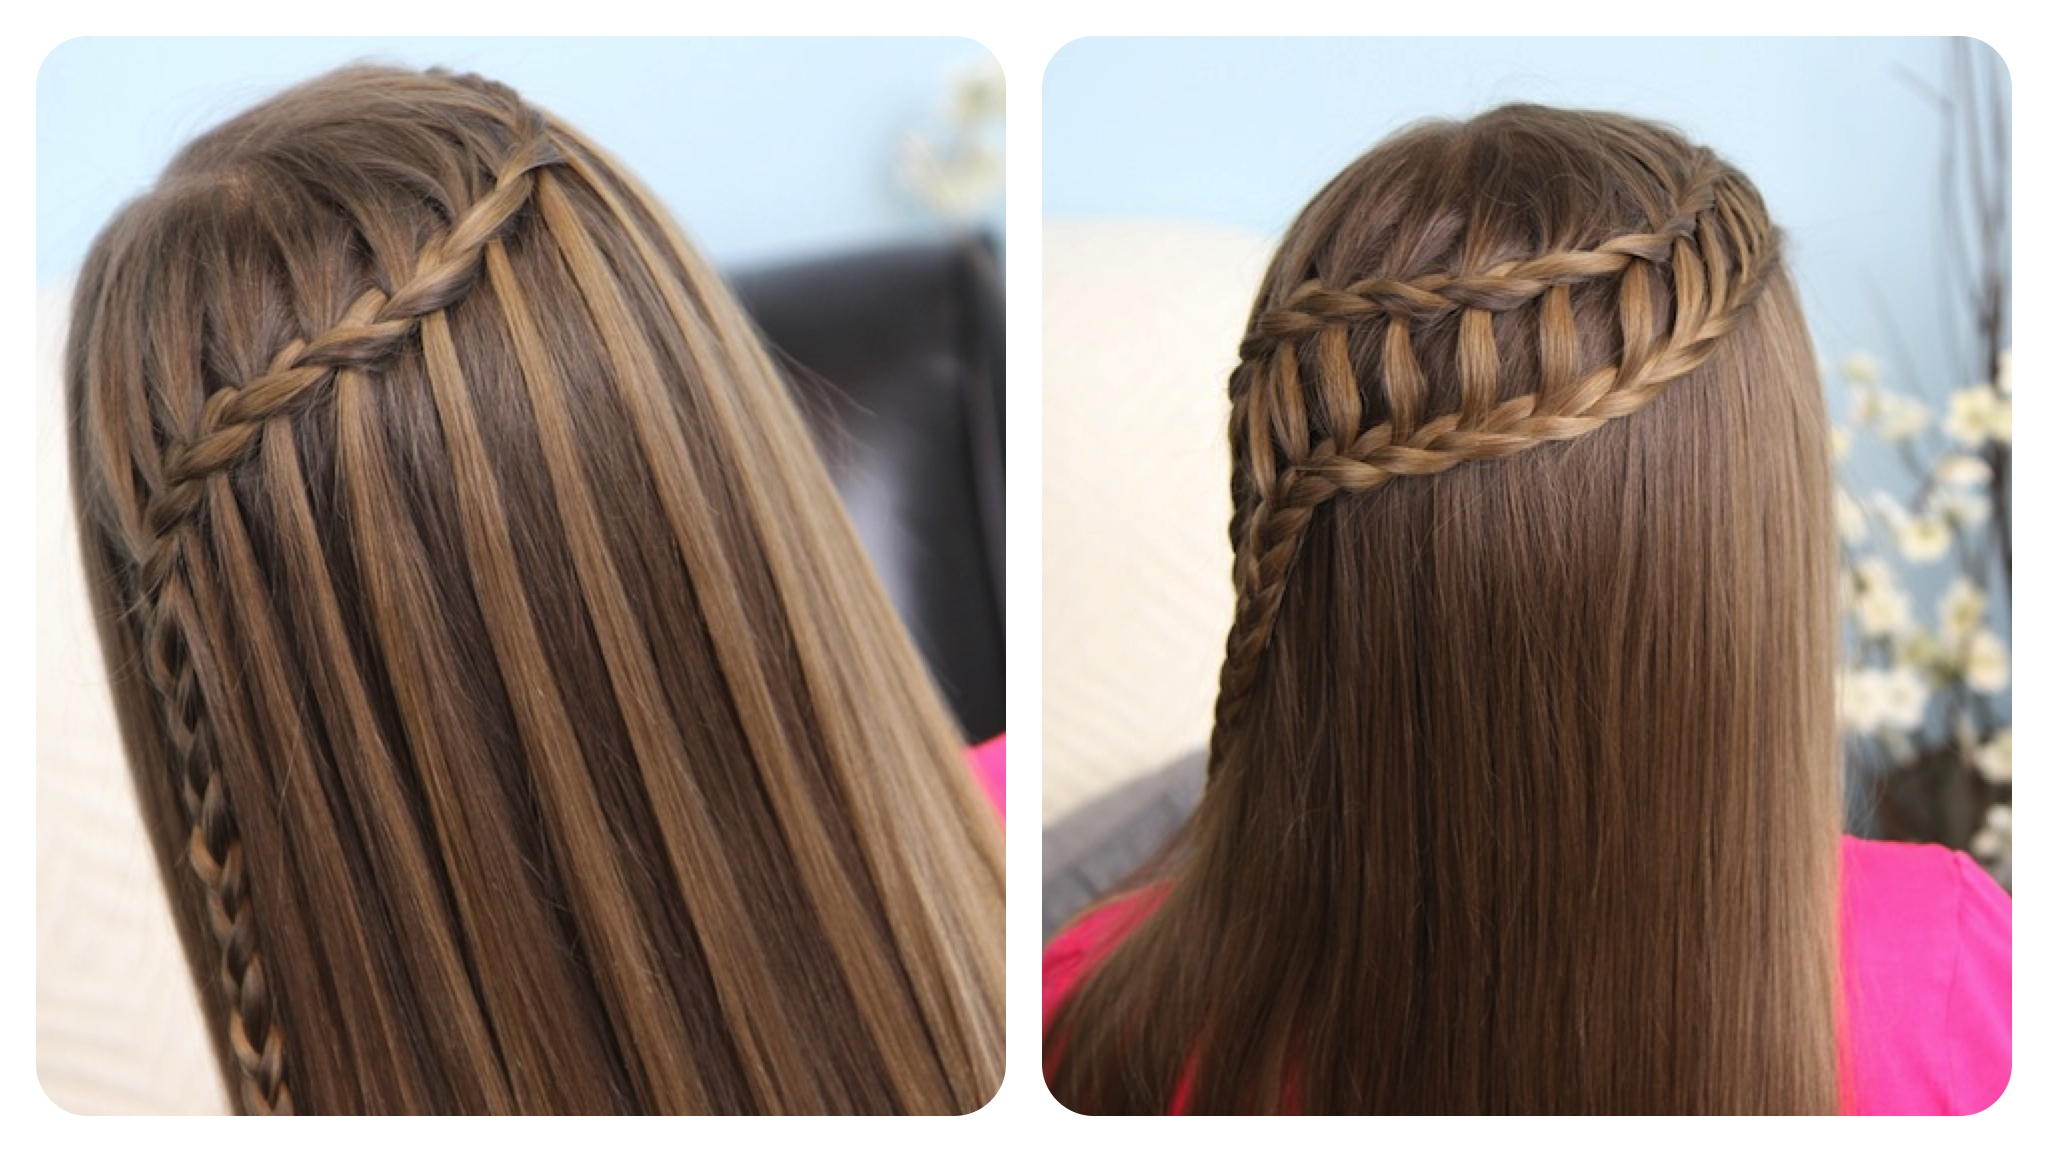 10 Simple Hairstyles for College Going Girls